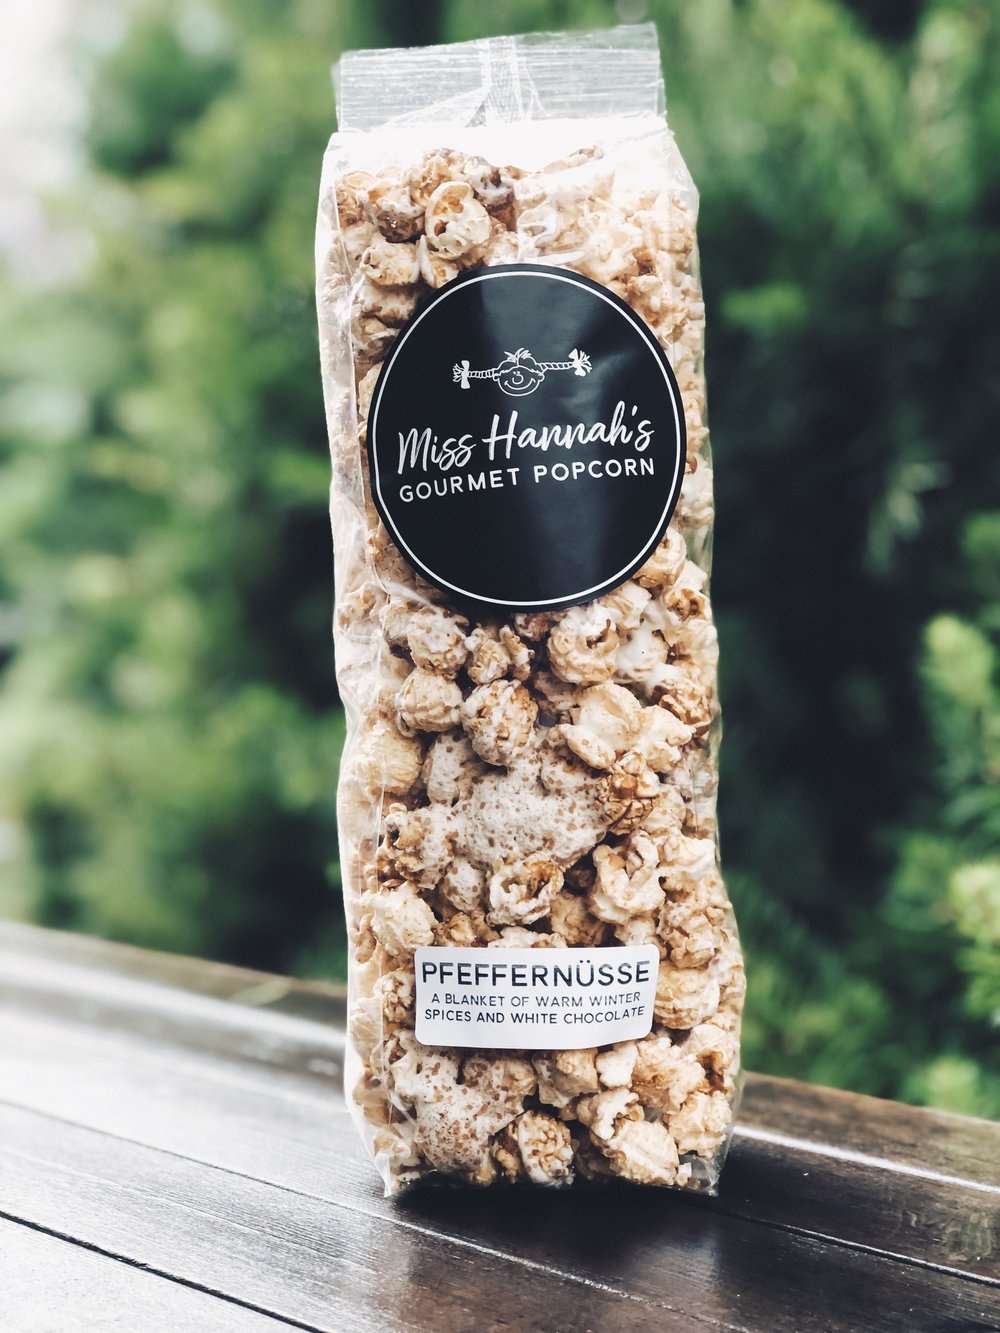 Pfeffernusse - Named after the traditional holiday cookie, this treat is coated in winter spices and white chocolate drizzle.Available during the Holiday SeasonGluten FreeContains Dairy